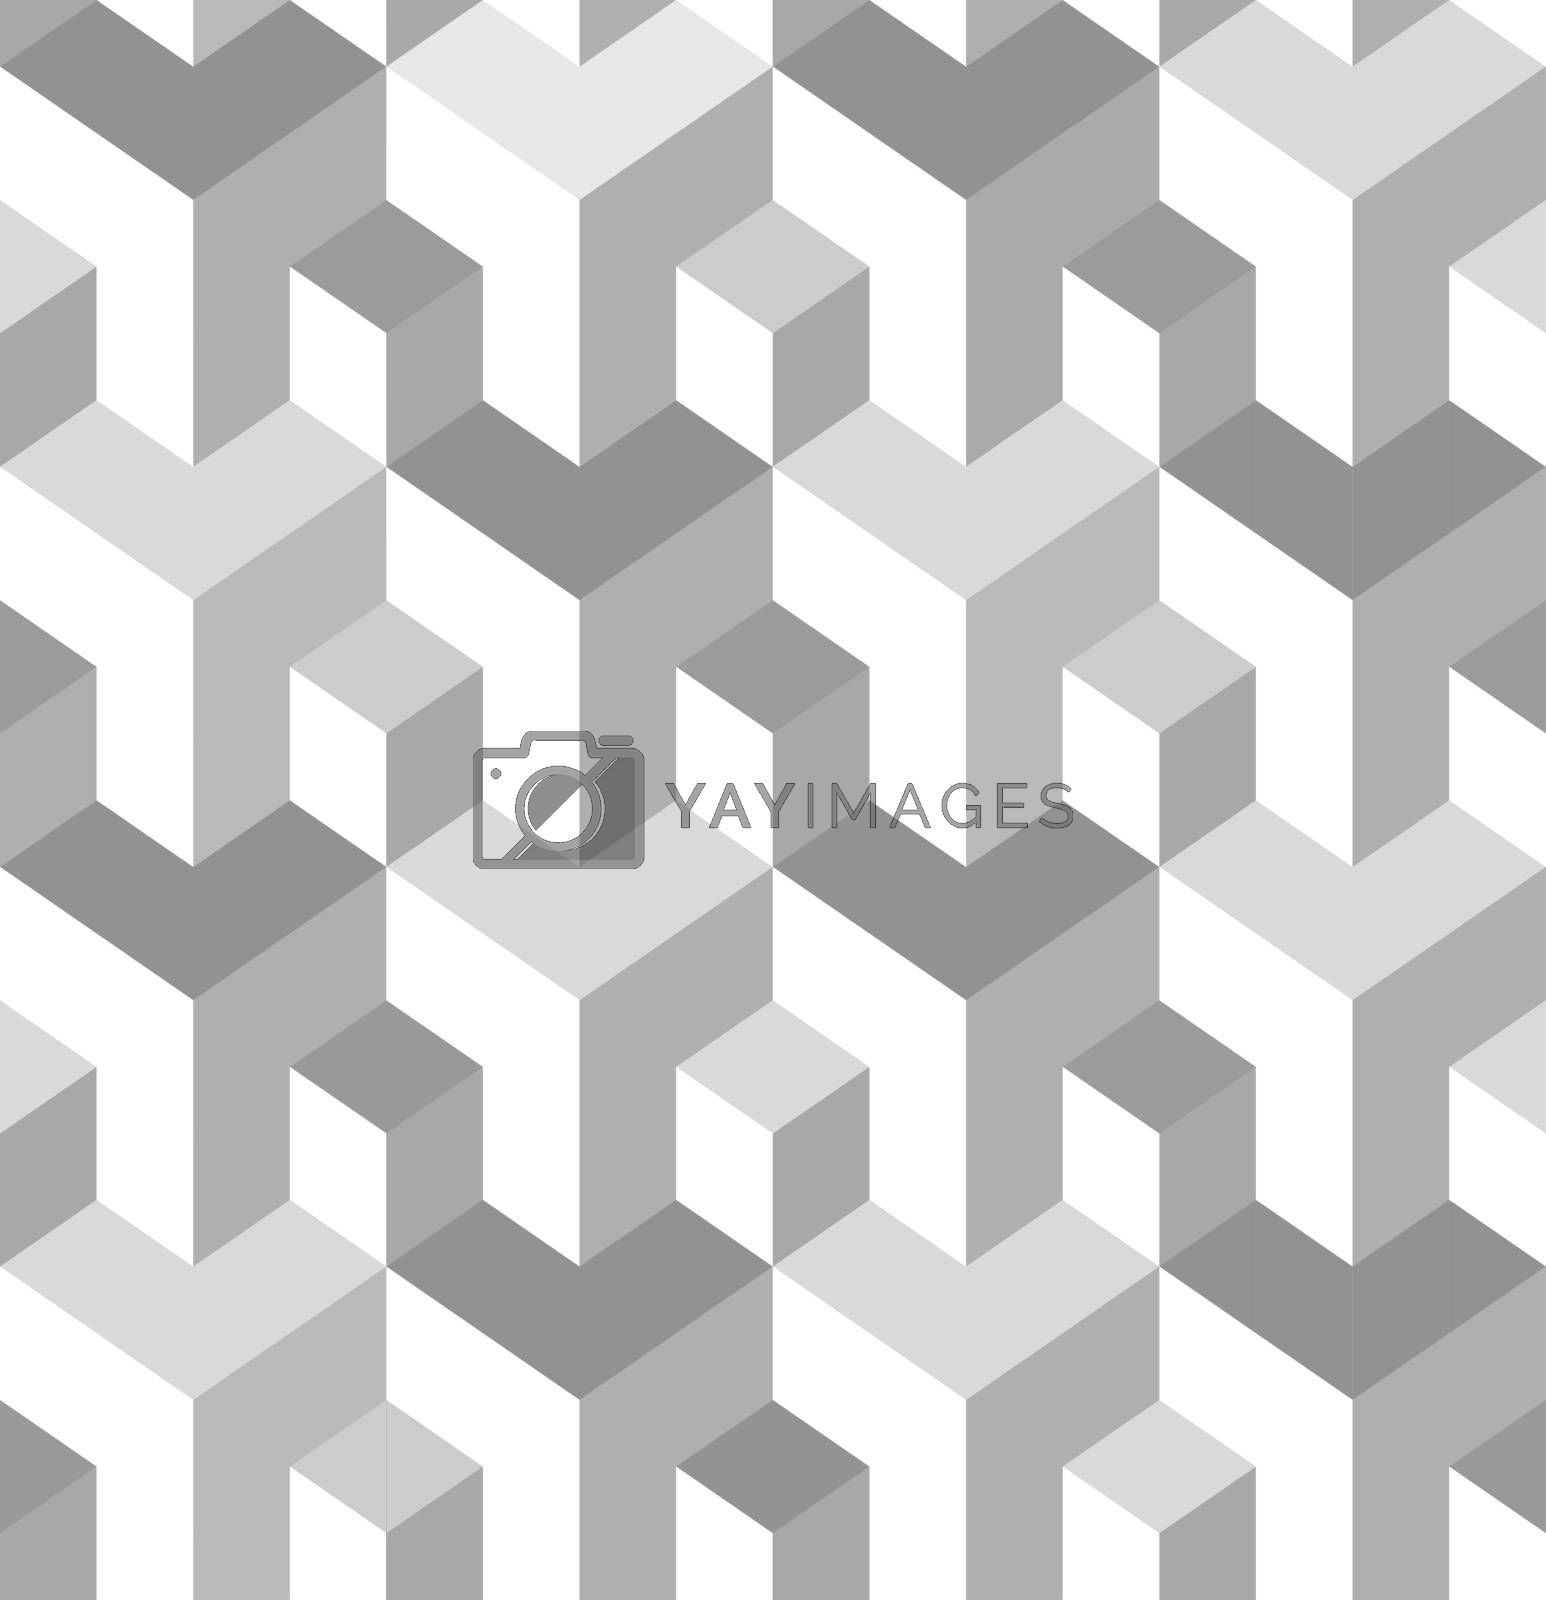 Vector seamless pattern. Modern stylish texture. Repeating geometric tiles with isometric elements